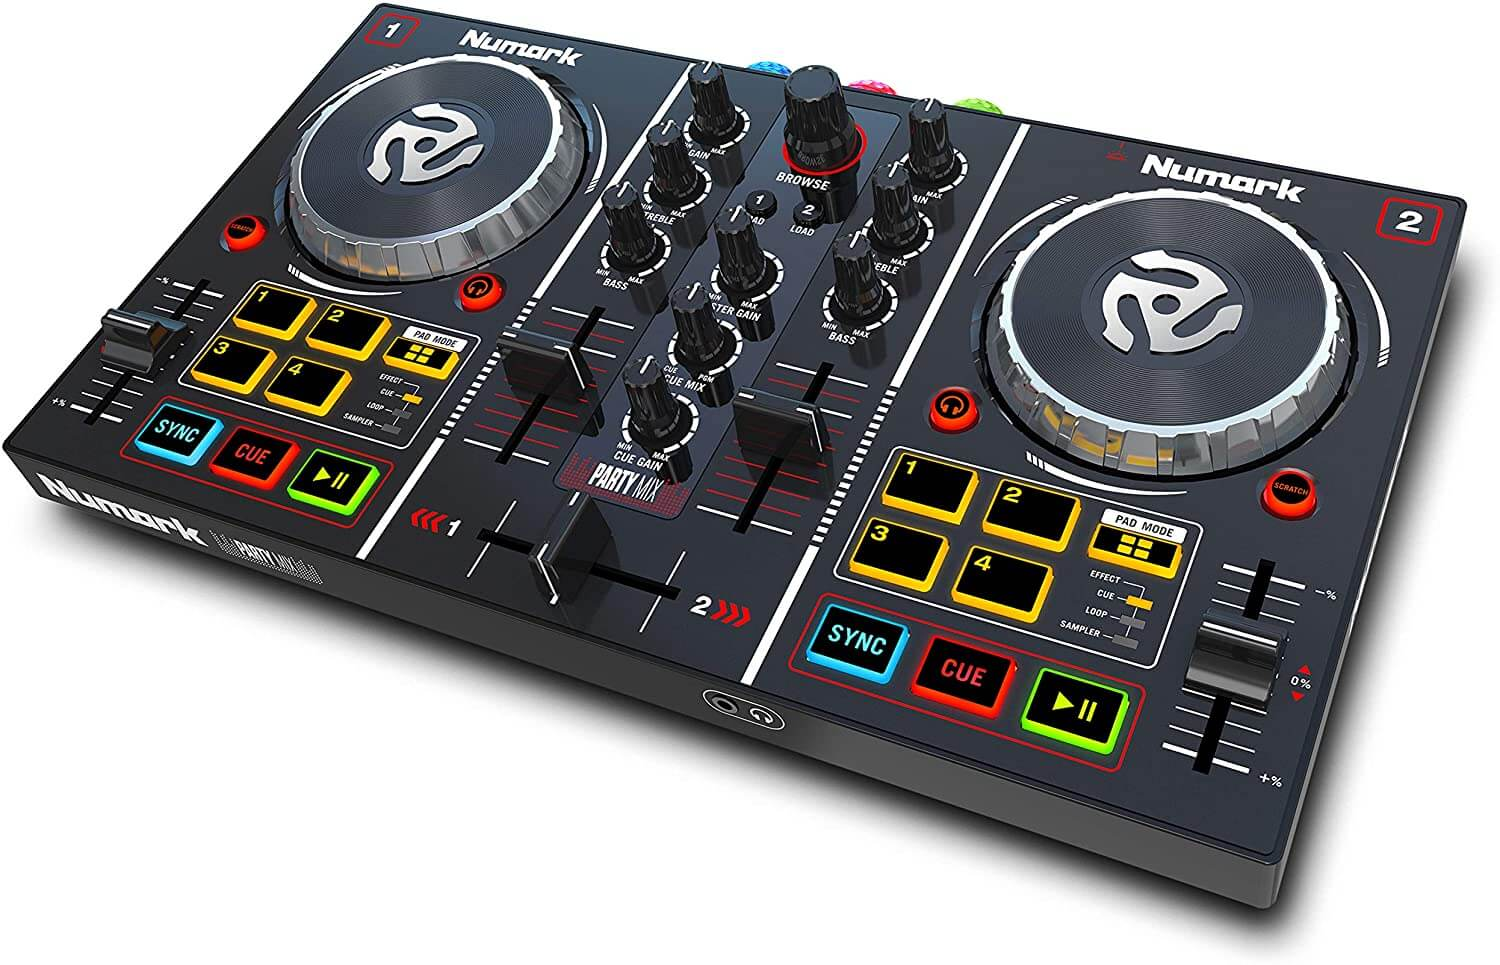 Consolle DJ a 2 canali Numark Party Mix